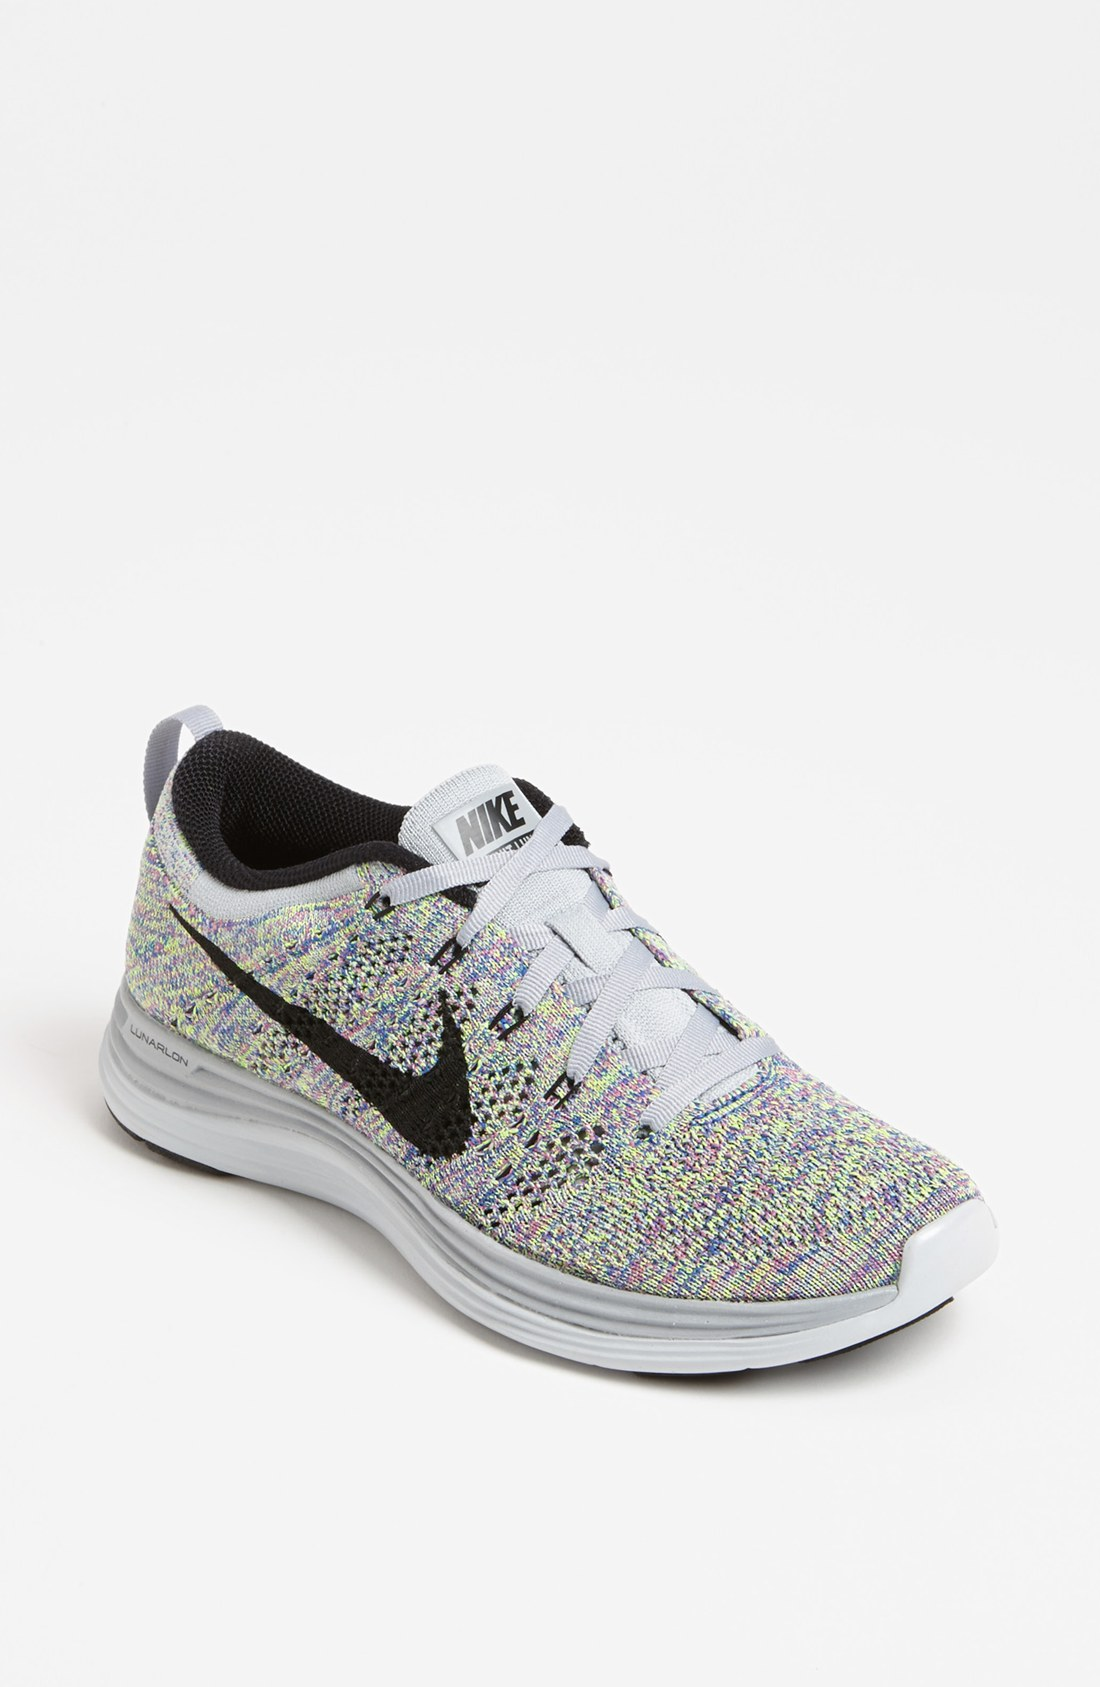 Nike Flyknit Lunar1 Running Shoe in Multicolor (Wolf Grey ...